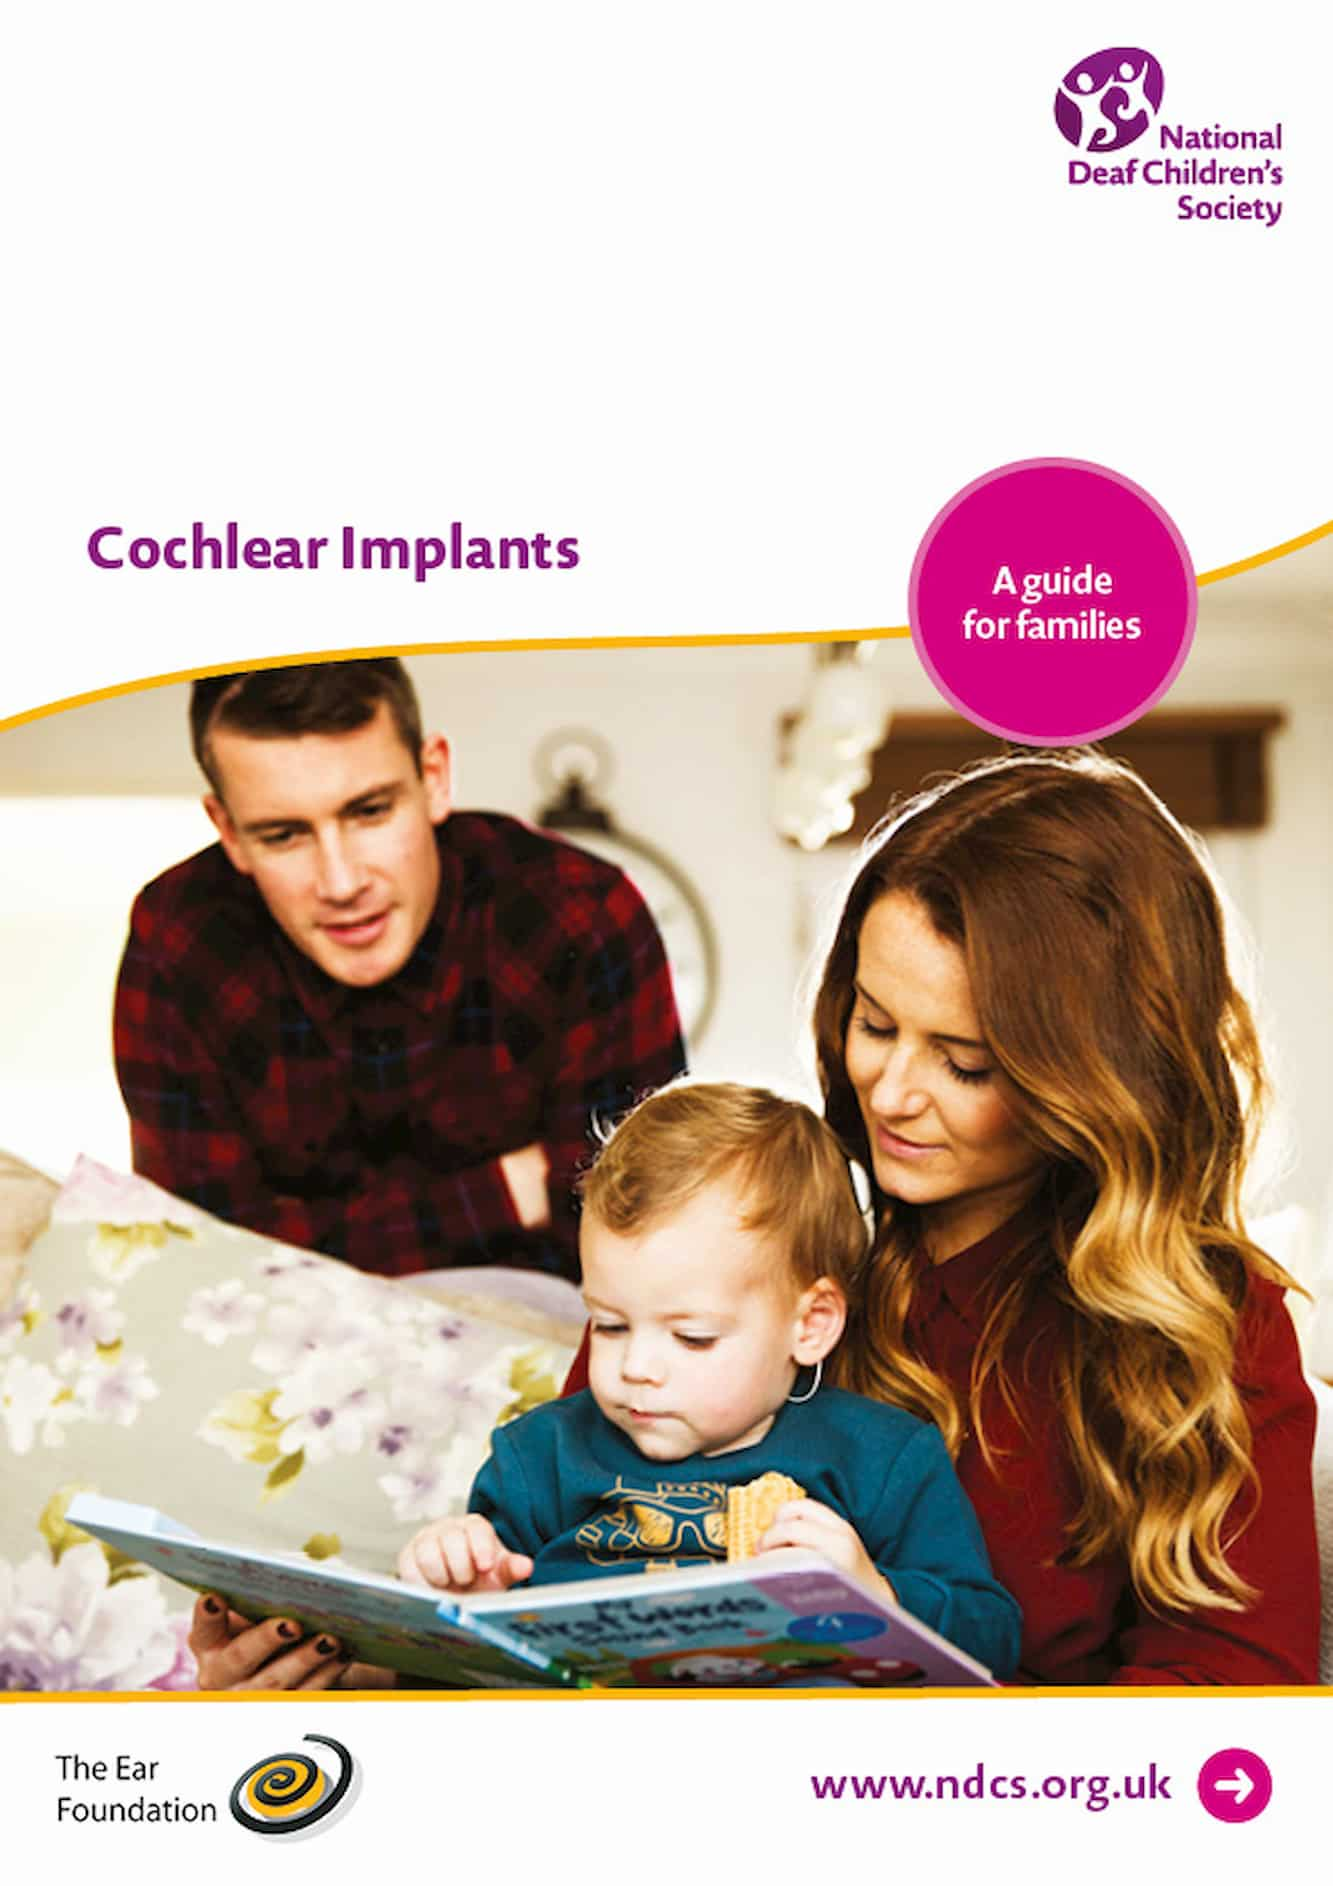 Cochlear Implants – A guide for families